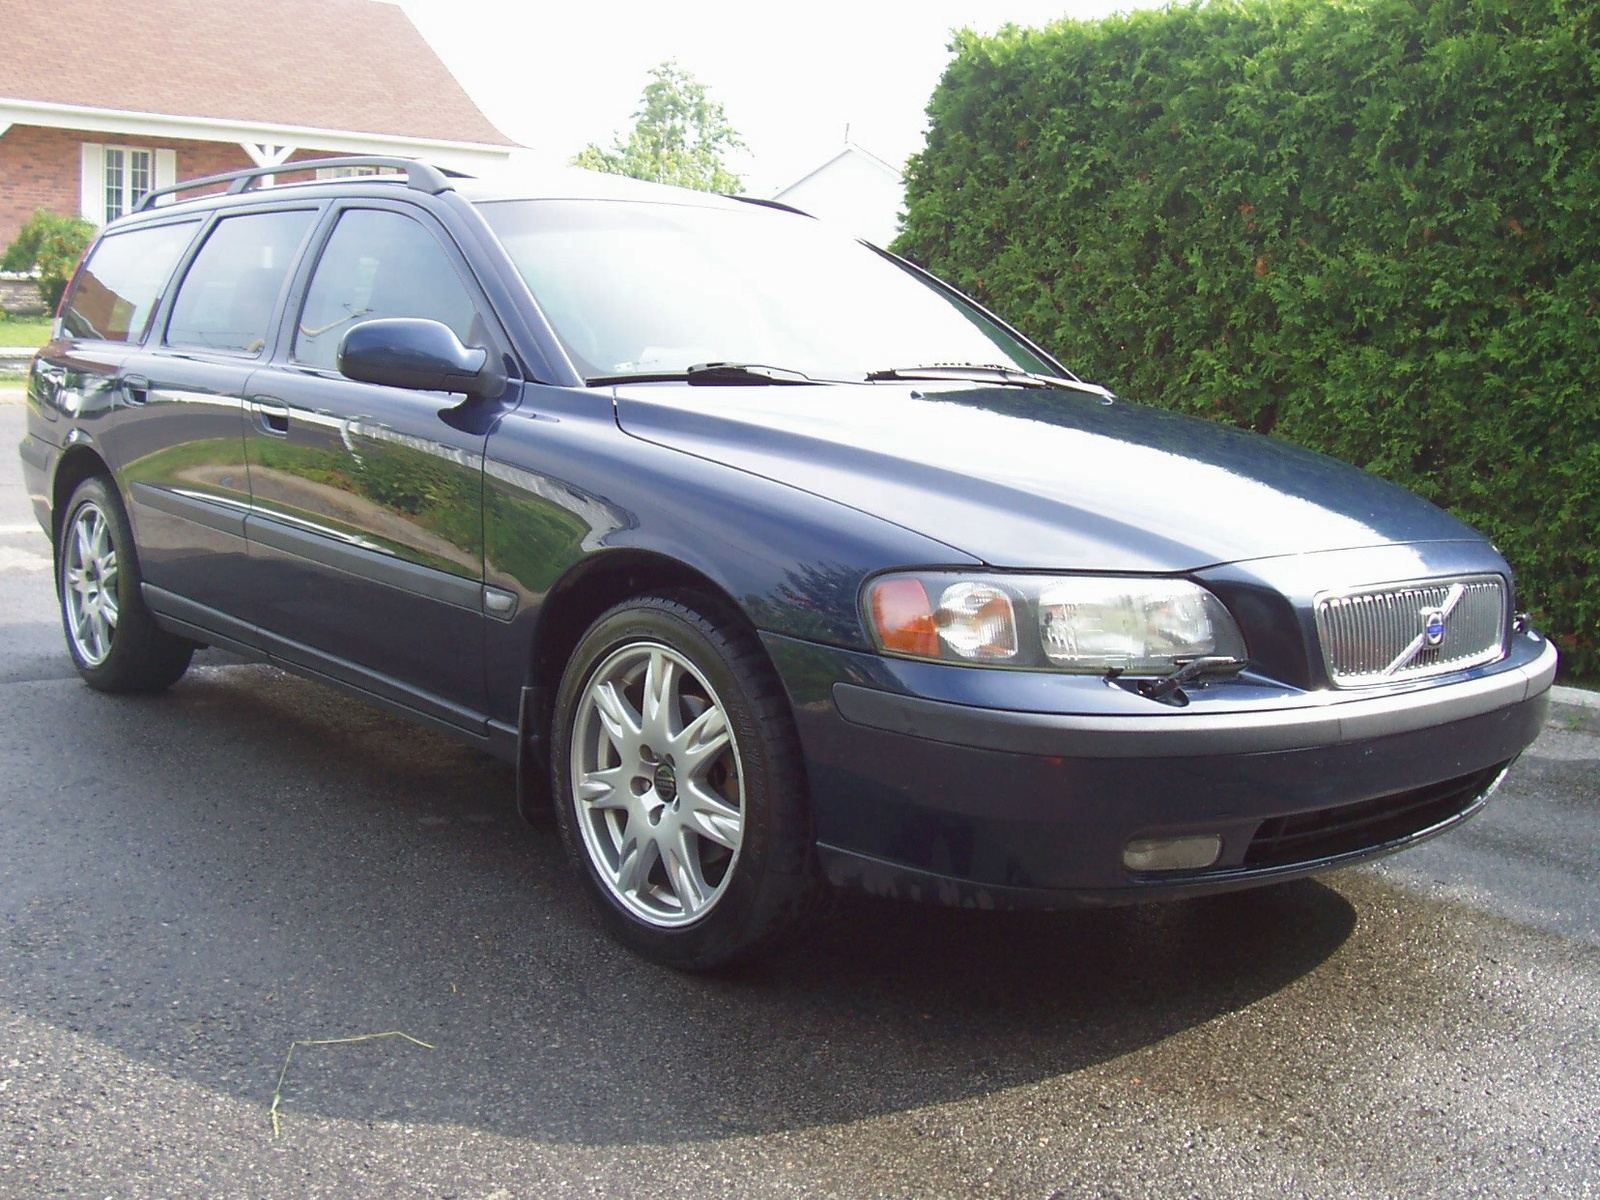 2003 Volvo V70 - Pictures - 2003 Volvo V70 T5 picture - CarGurus